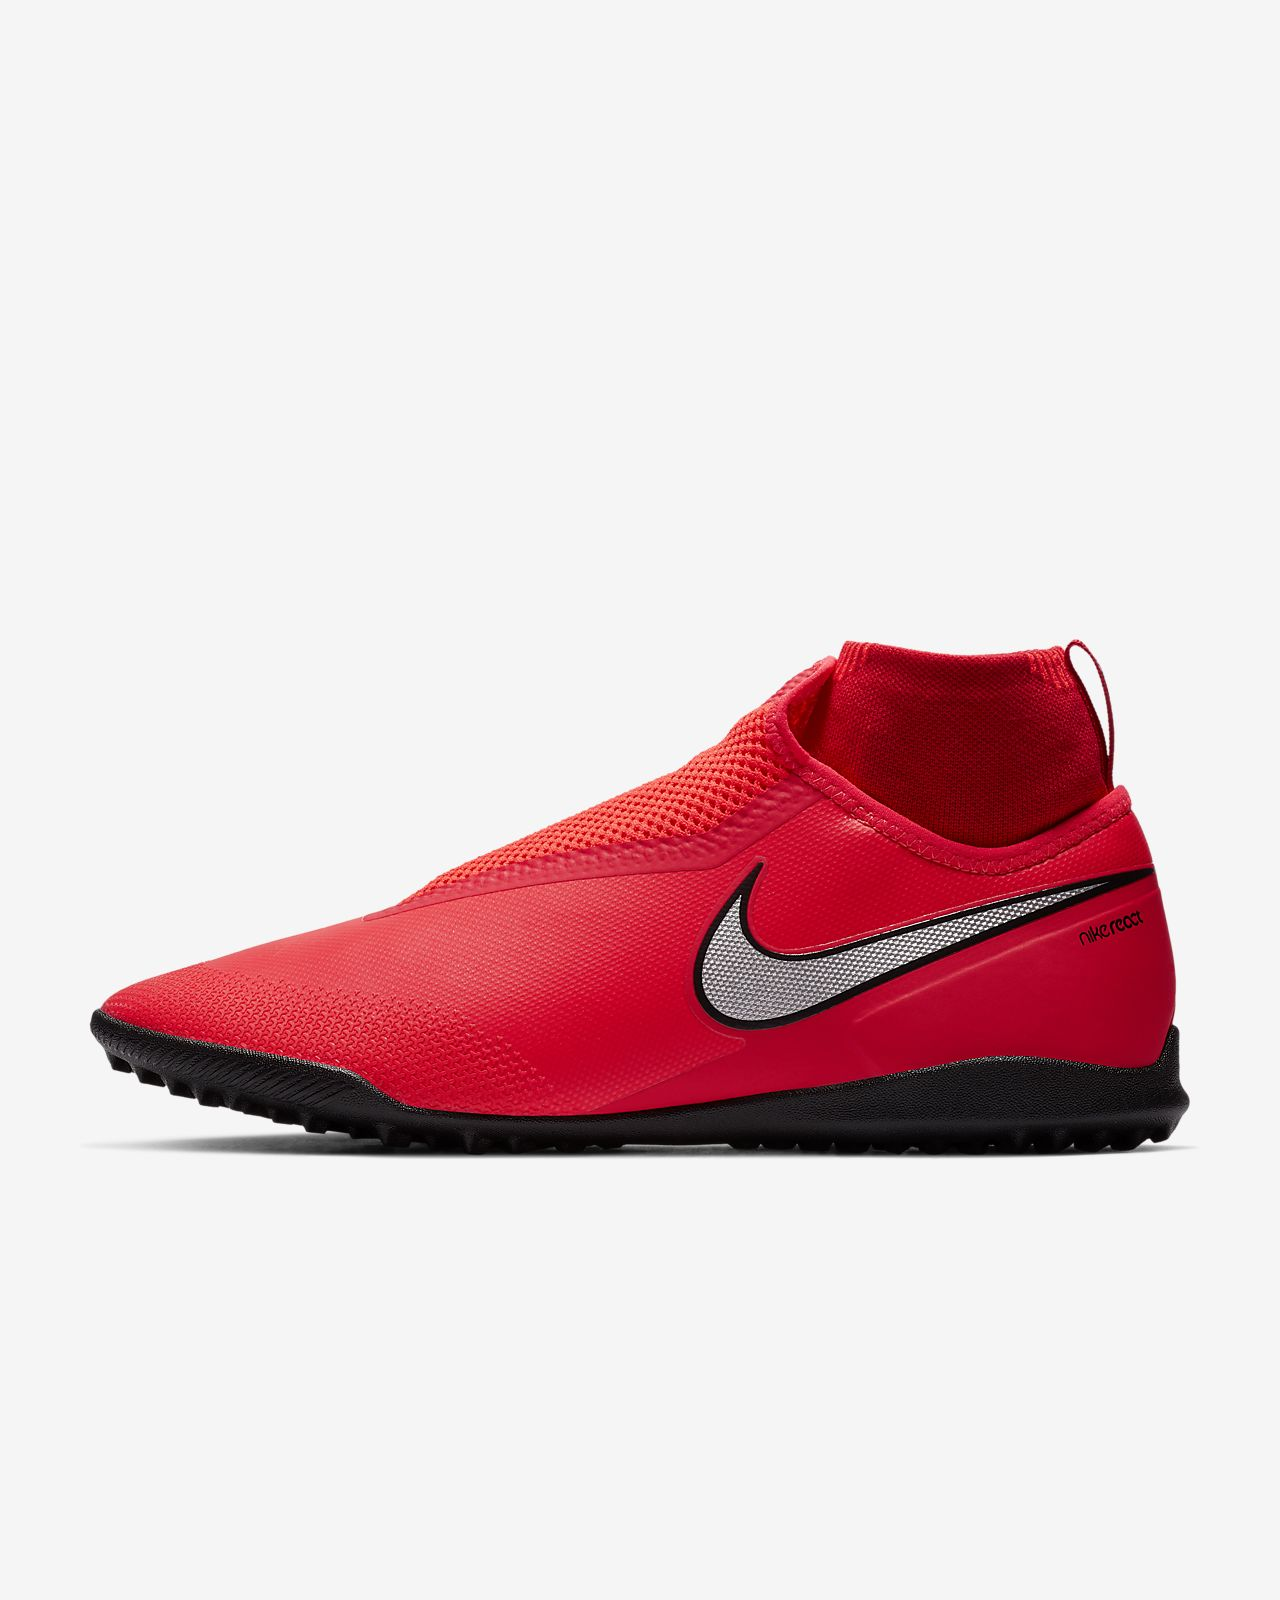 Calzado de fútbol para terreno artificial Nike React PhantomVSN Pro Dynamic Fit Game Over TF